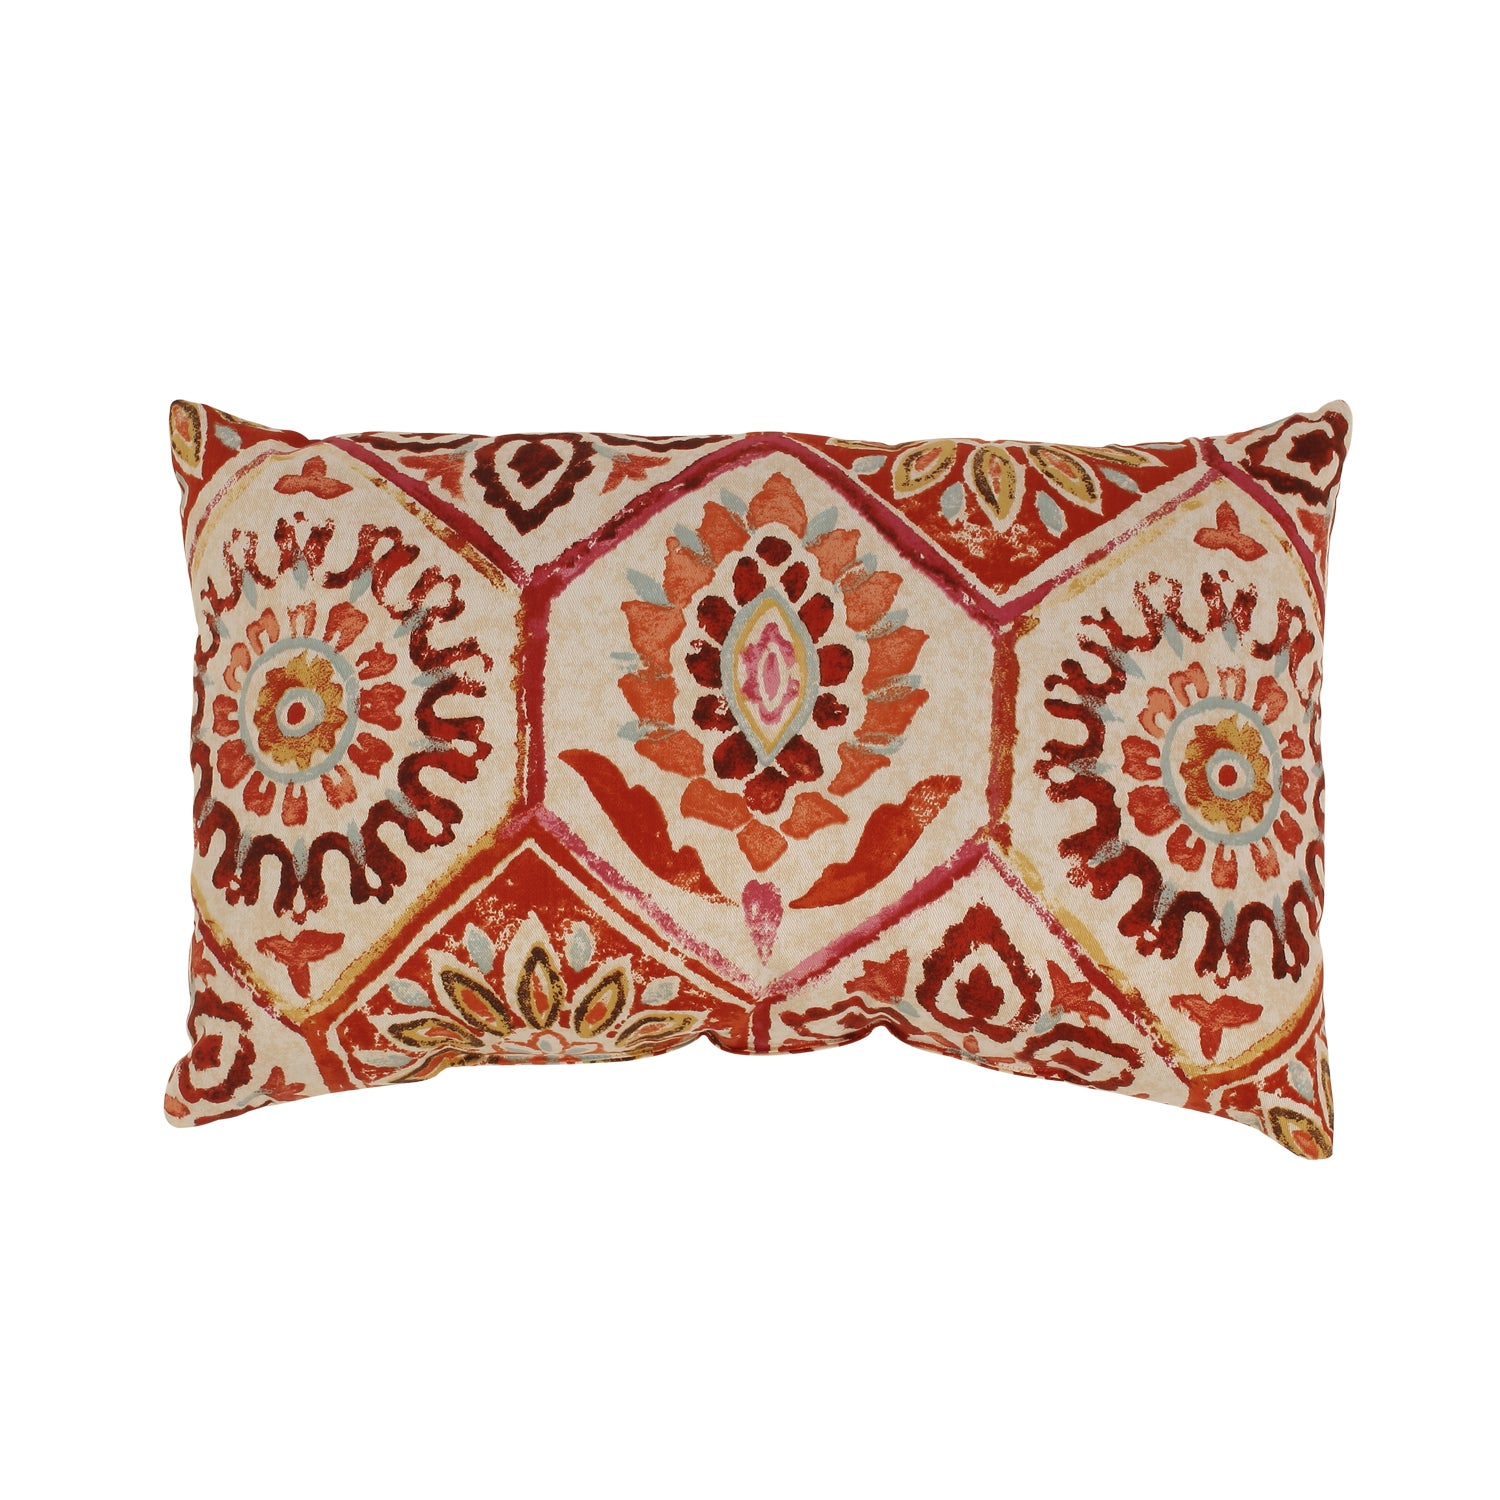 Buy Red, Floral Throw Pillows Online At Overstock.com | Our Best Decorative  Accessories Deals